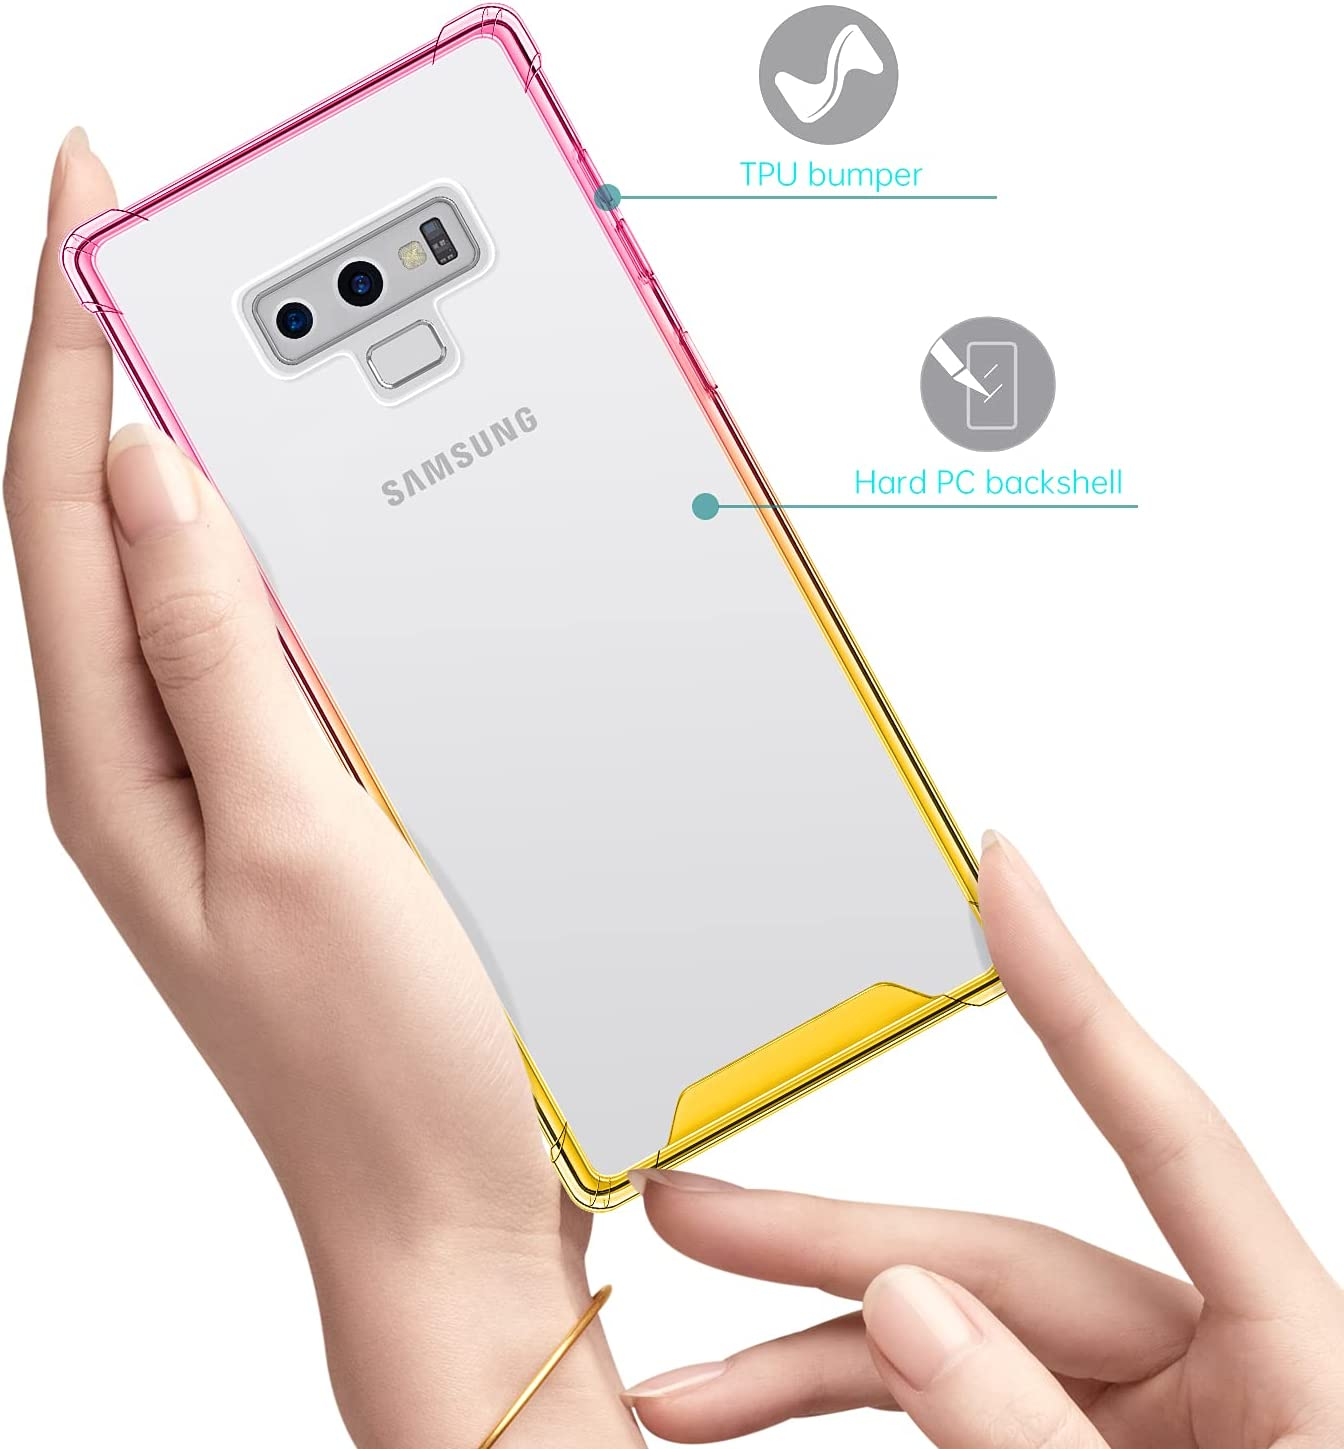 Salawat Galaxy Note 9 Case, Clear Cute Gradient Slim Phone Case Cover Reinforced TPU Bumper Hard PC Back Shockproof Protective Case for Samsung Galaxy Note 9 (Pink Gold)